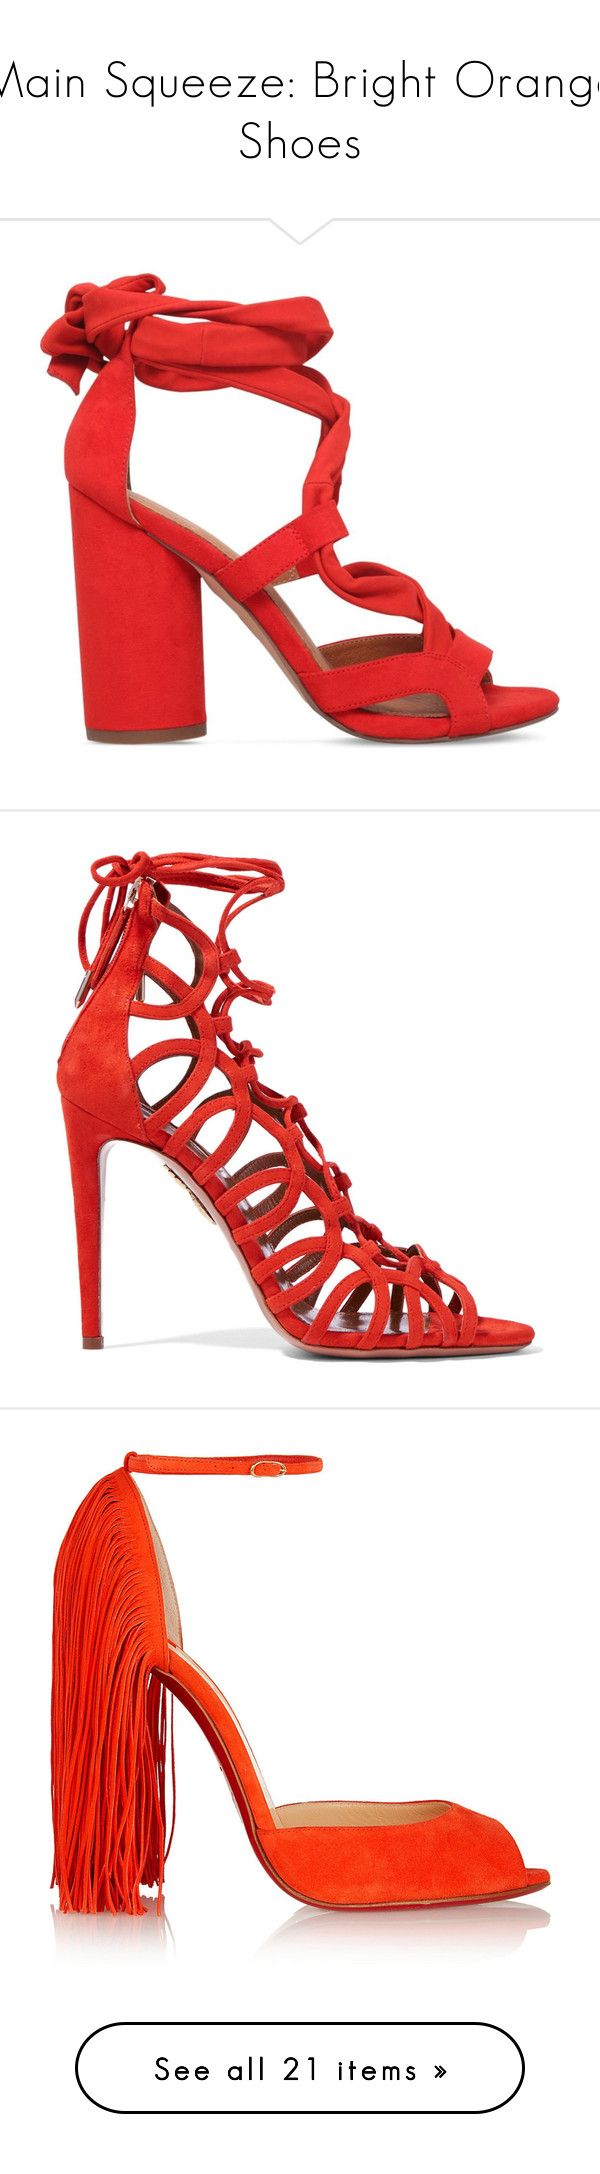 """""""Main Squeeze: Bright Orange Shoes"""" by polyvore-editorial ❤ liked on Polyvore featuring brightorangeshoes, shoes, sandals, heels, orange, open toe high heel sandals, fleece-lined shoes, block heel sandals, kg kurt geiger and high heel shoes"""